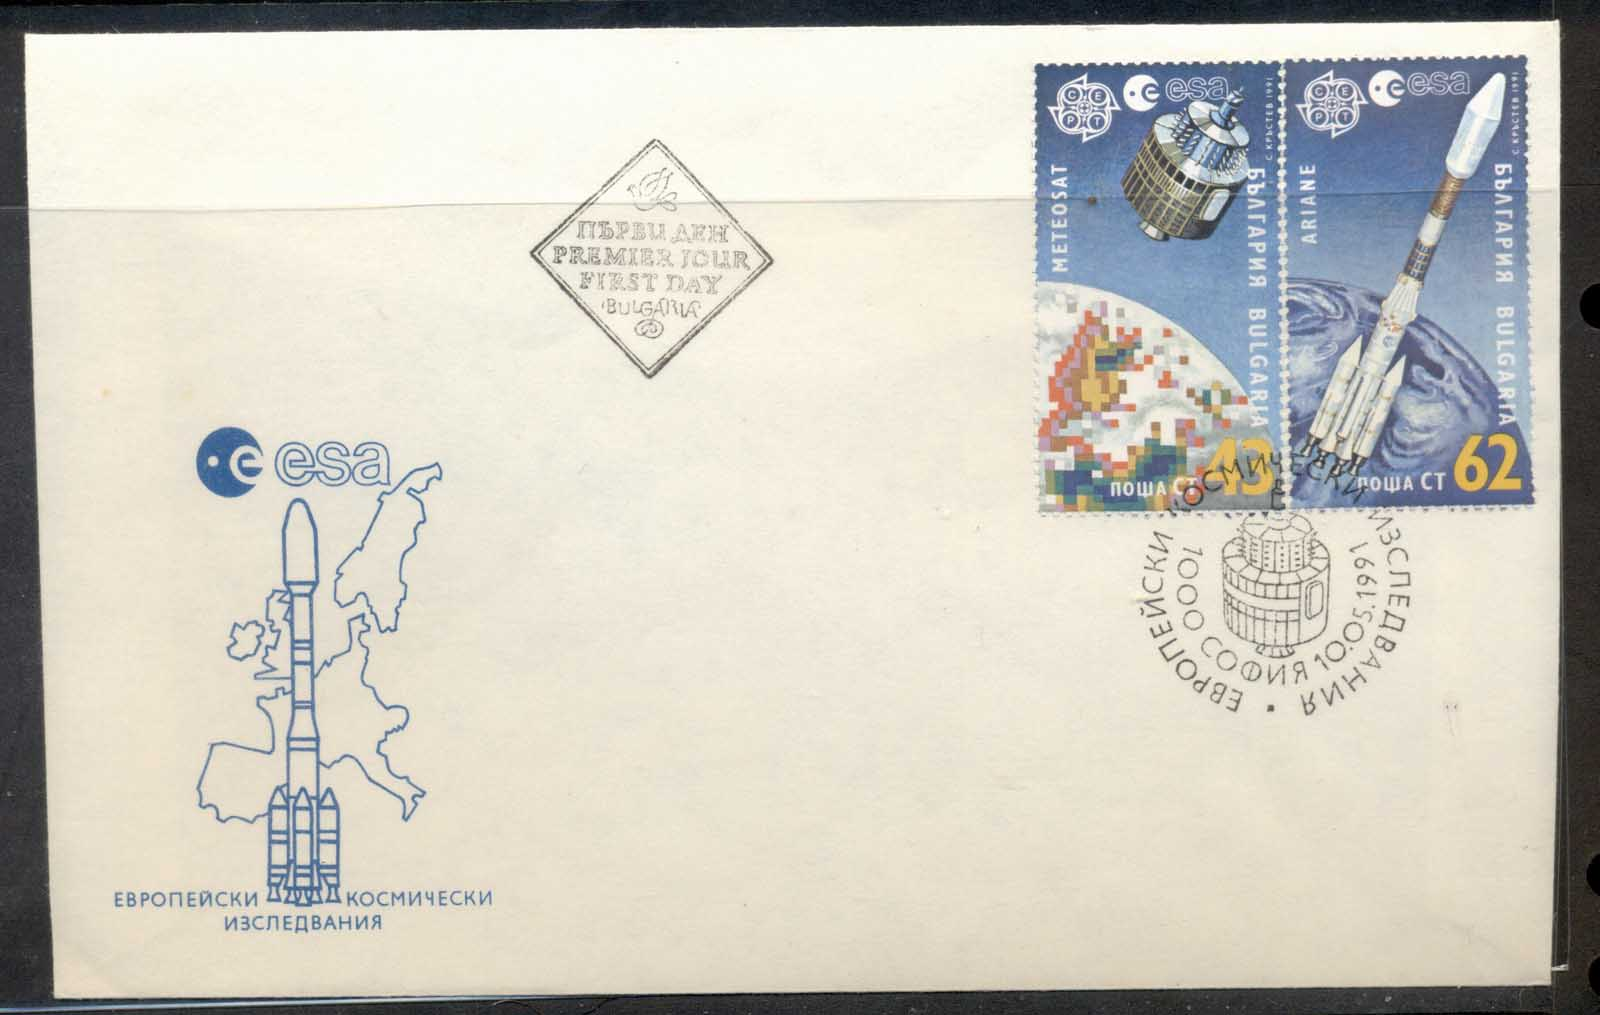 Bulgaria 1991 Europa Man in Space FDC